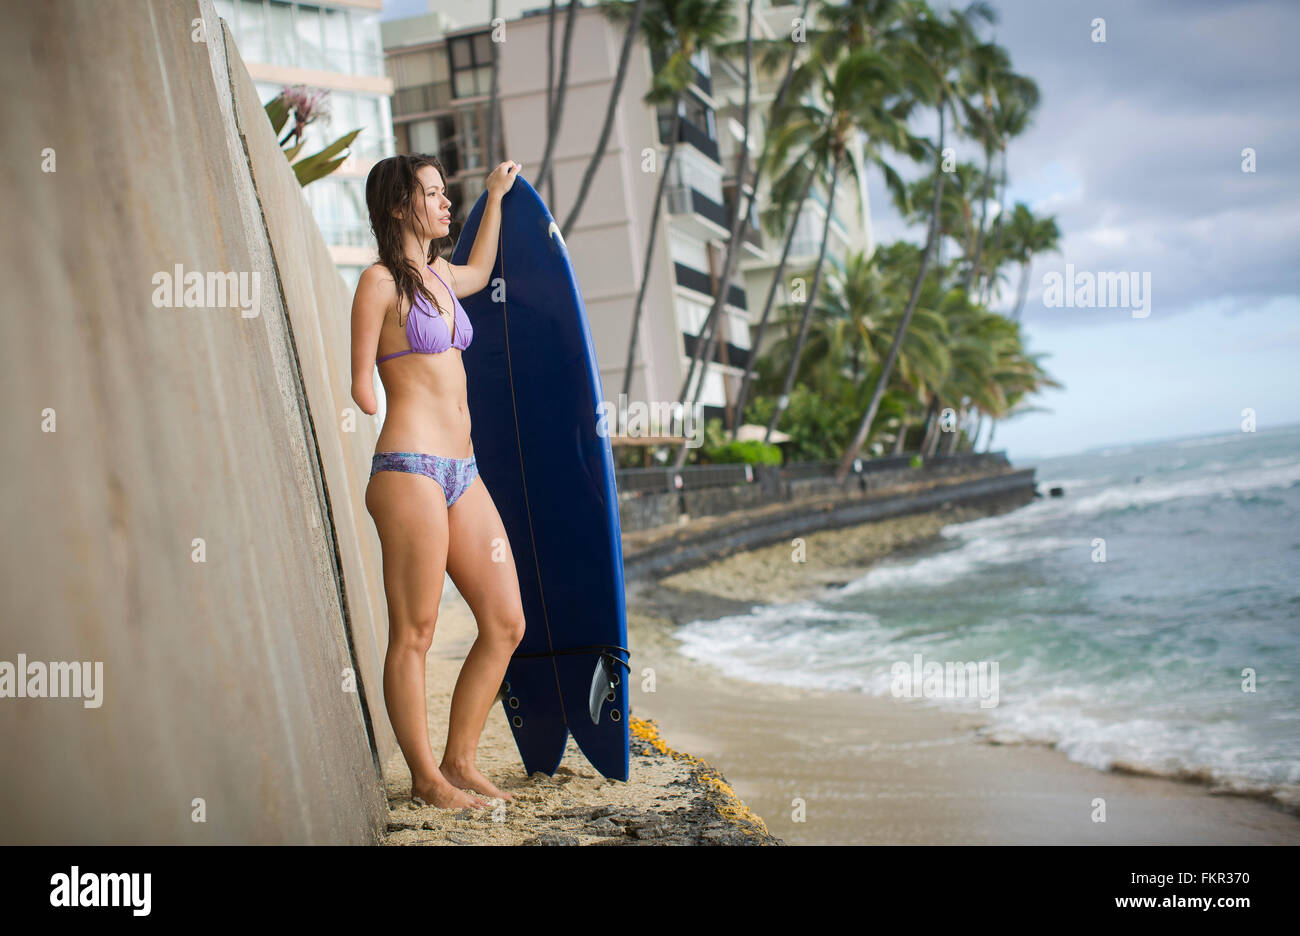 Mixed race amputee with surfboard on beach Stock Photo